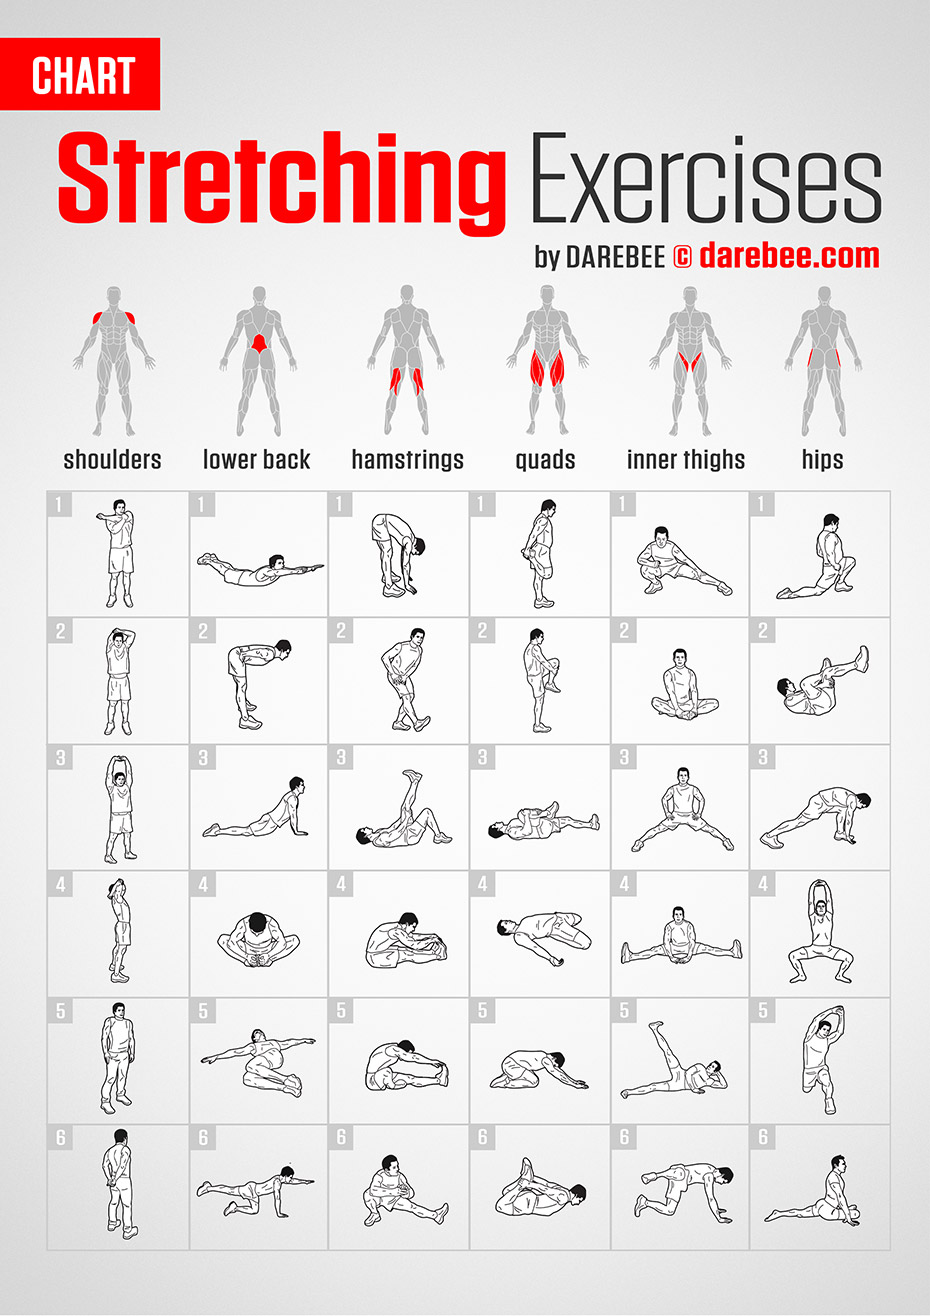 #Chart #Darebee #Exercises #Fitness #stretching #workout Stretching Exercises | Chart by DAREBEE #da...